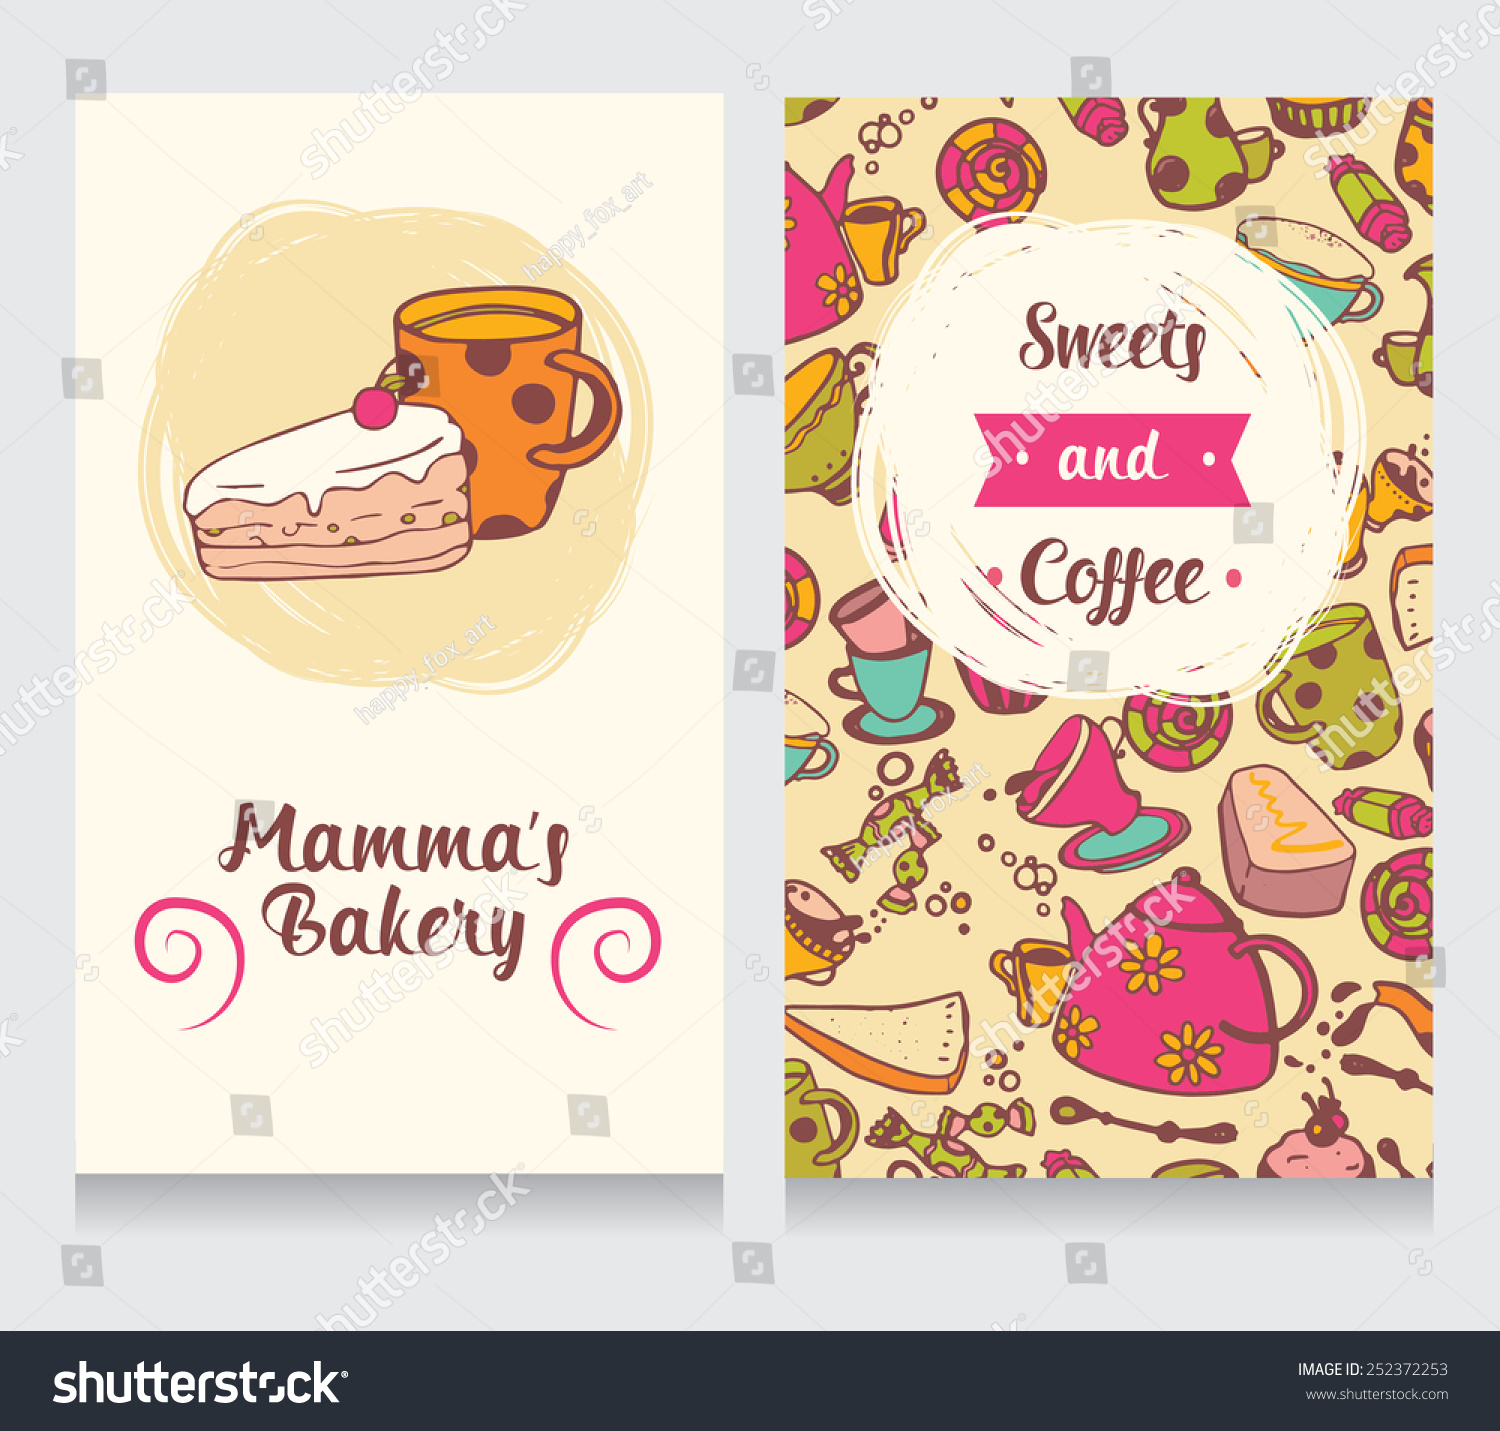 Cute Funny Business Card Bakery Vector Stock Vector 252372253 ...